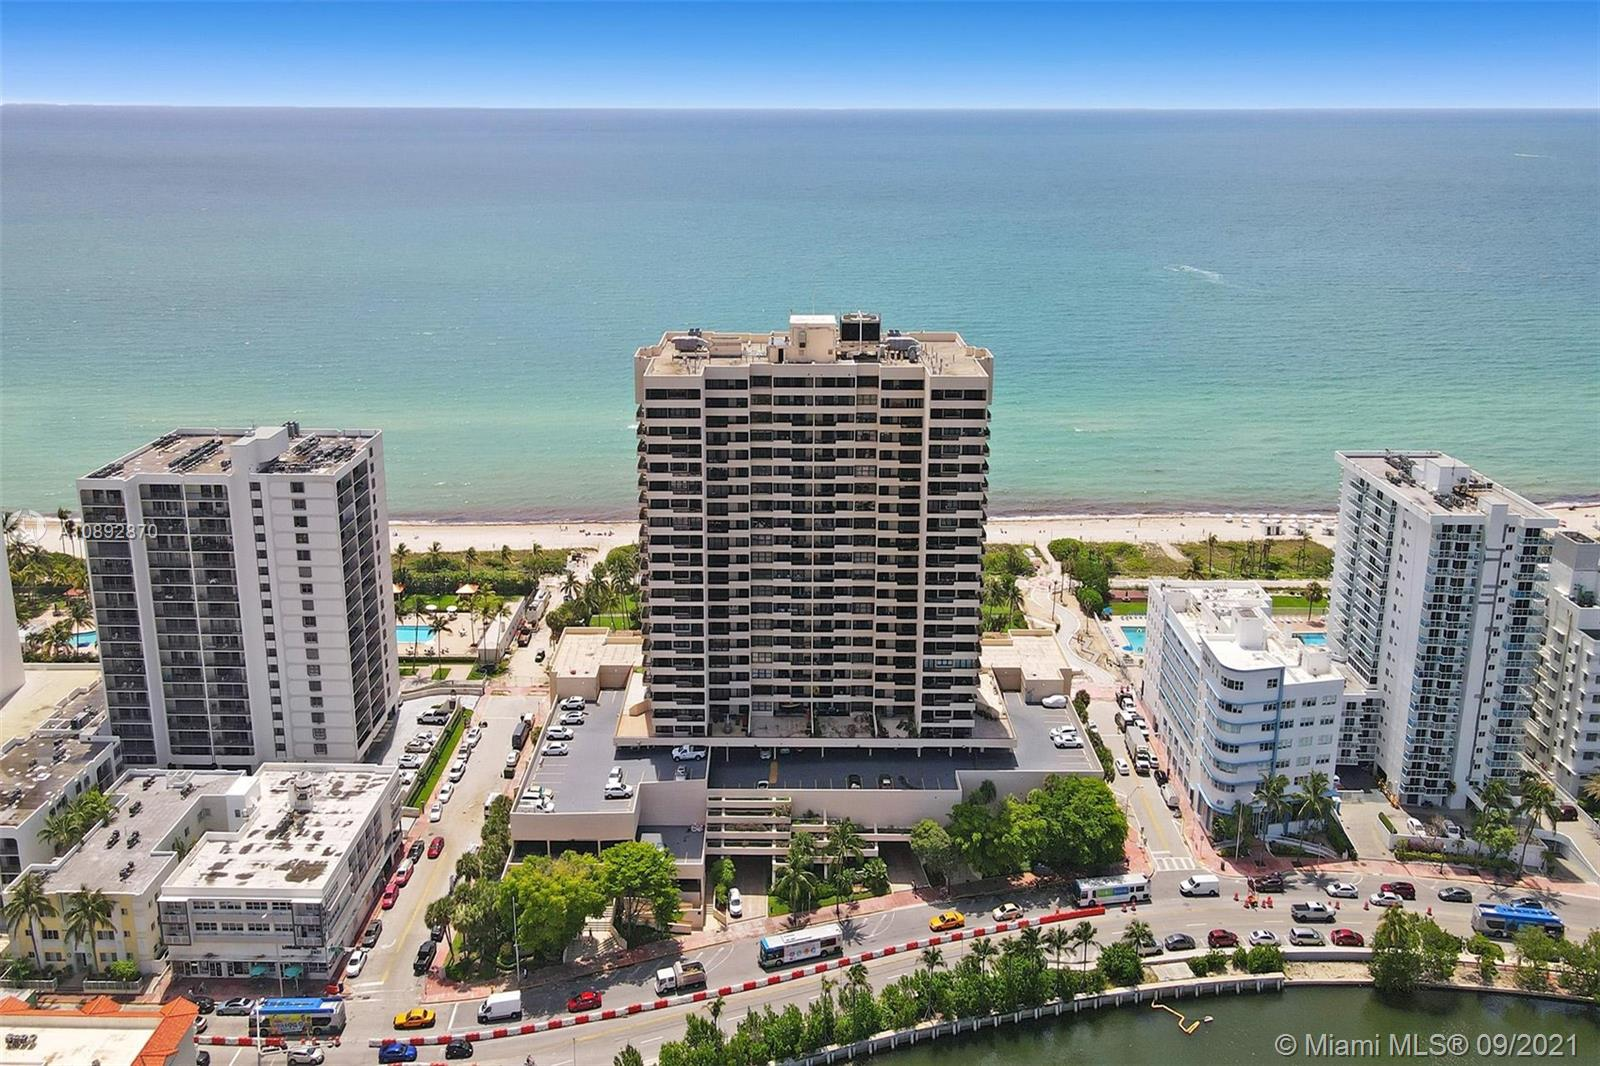 Great opportunity to own a 2/2 spacious & bright  unit with direct Ocean Views in a very convenient  location steps to Shops, Restaurants, Lincoln Rd, Faena District & Boardwalk behind Bldg. plus minutes to SOBE.  Building offers 24hr. Security, Concierge, Rec.  Room, Sauna, Gym and a convenient Deli on premises. Hallways almost done with upgrades. Enjoy Florida Living wit the Beach as your backyard.Unit move in ready.